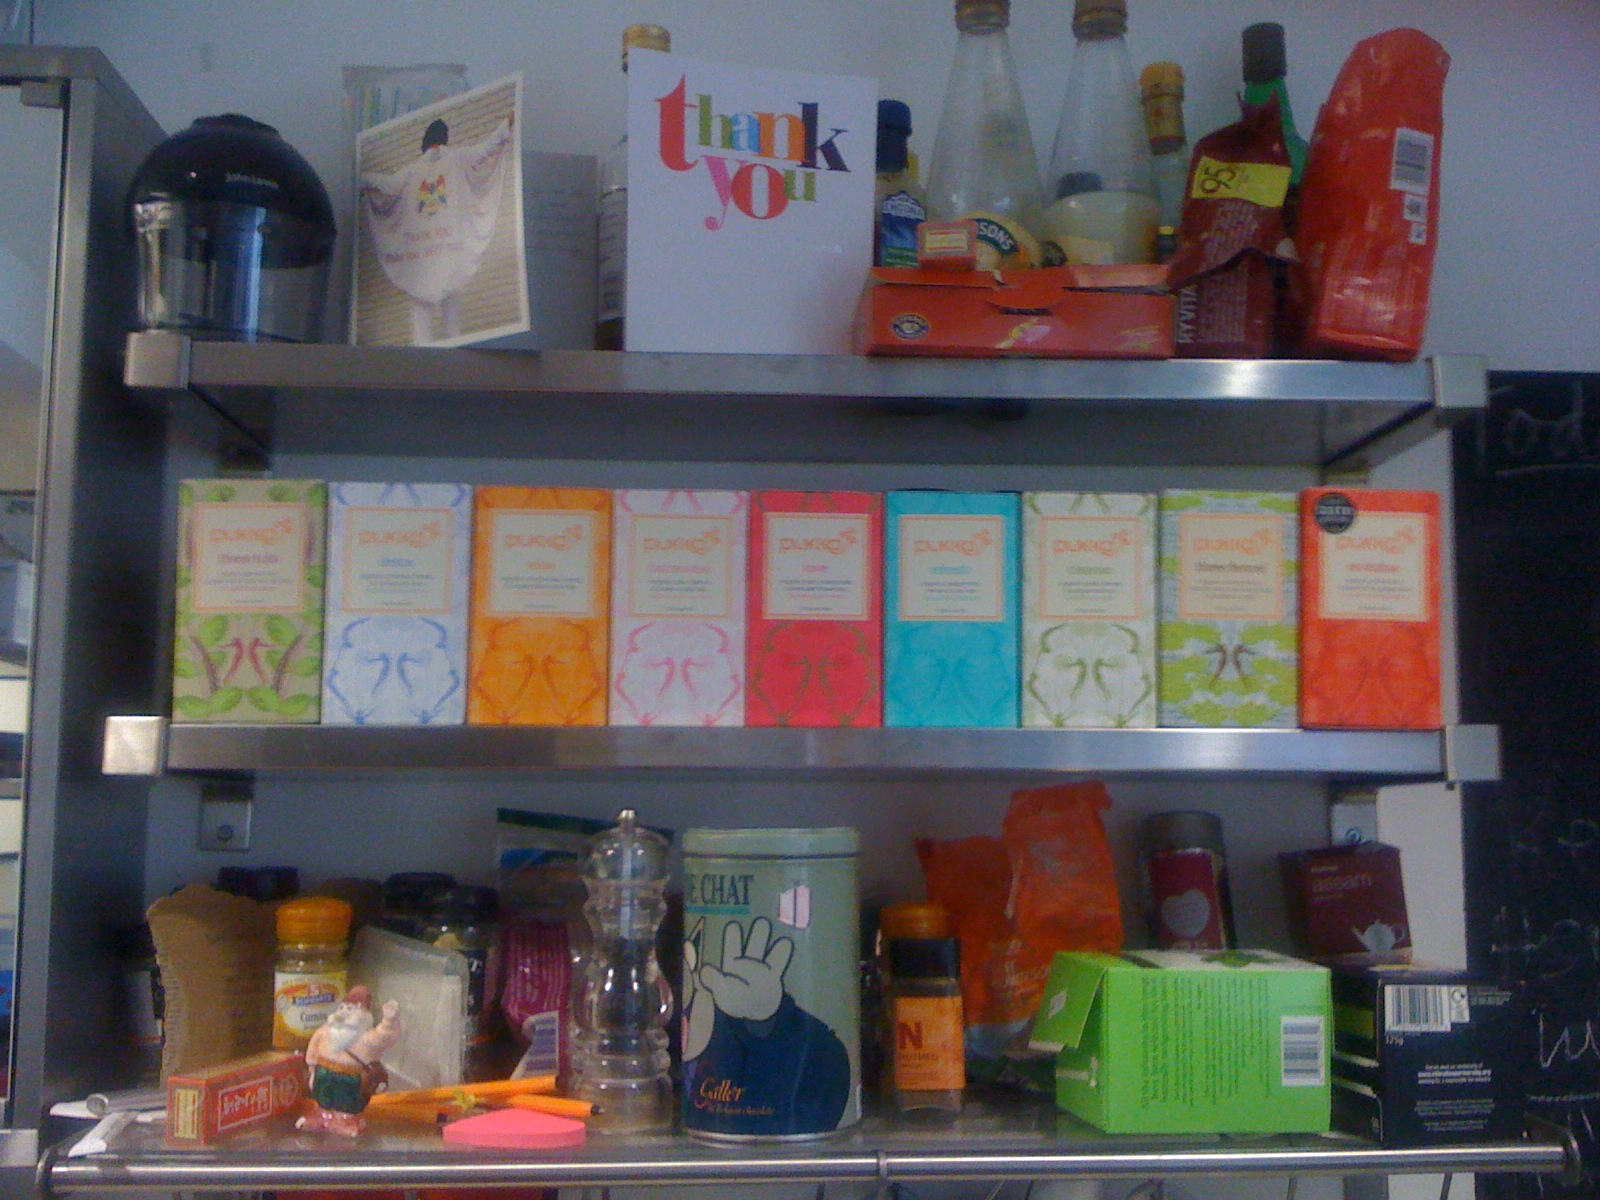 Pukka tea, Tatty Devine shelves